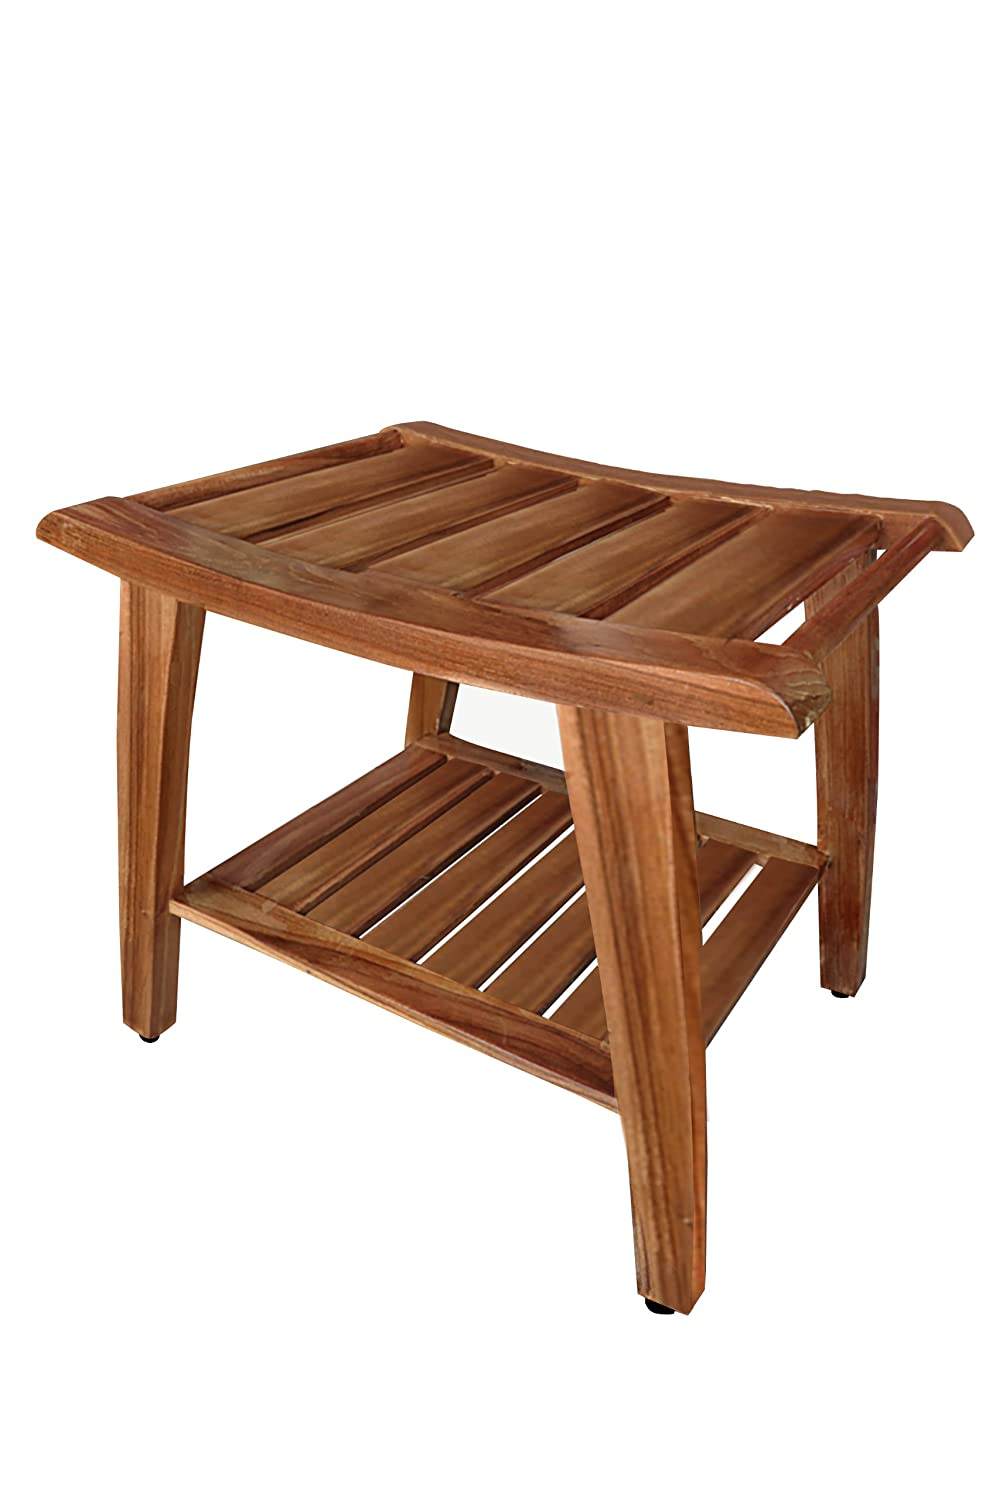 Total Teak Eco Friendly Shower Bench at Sears.com